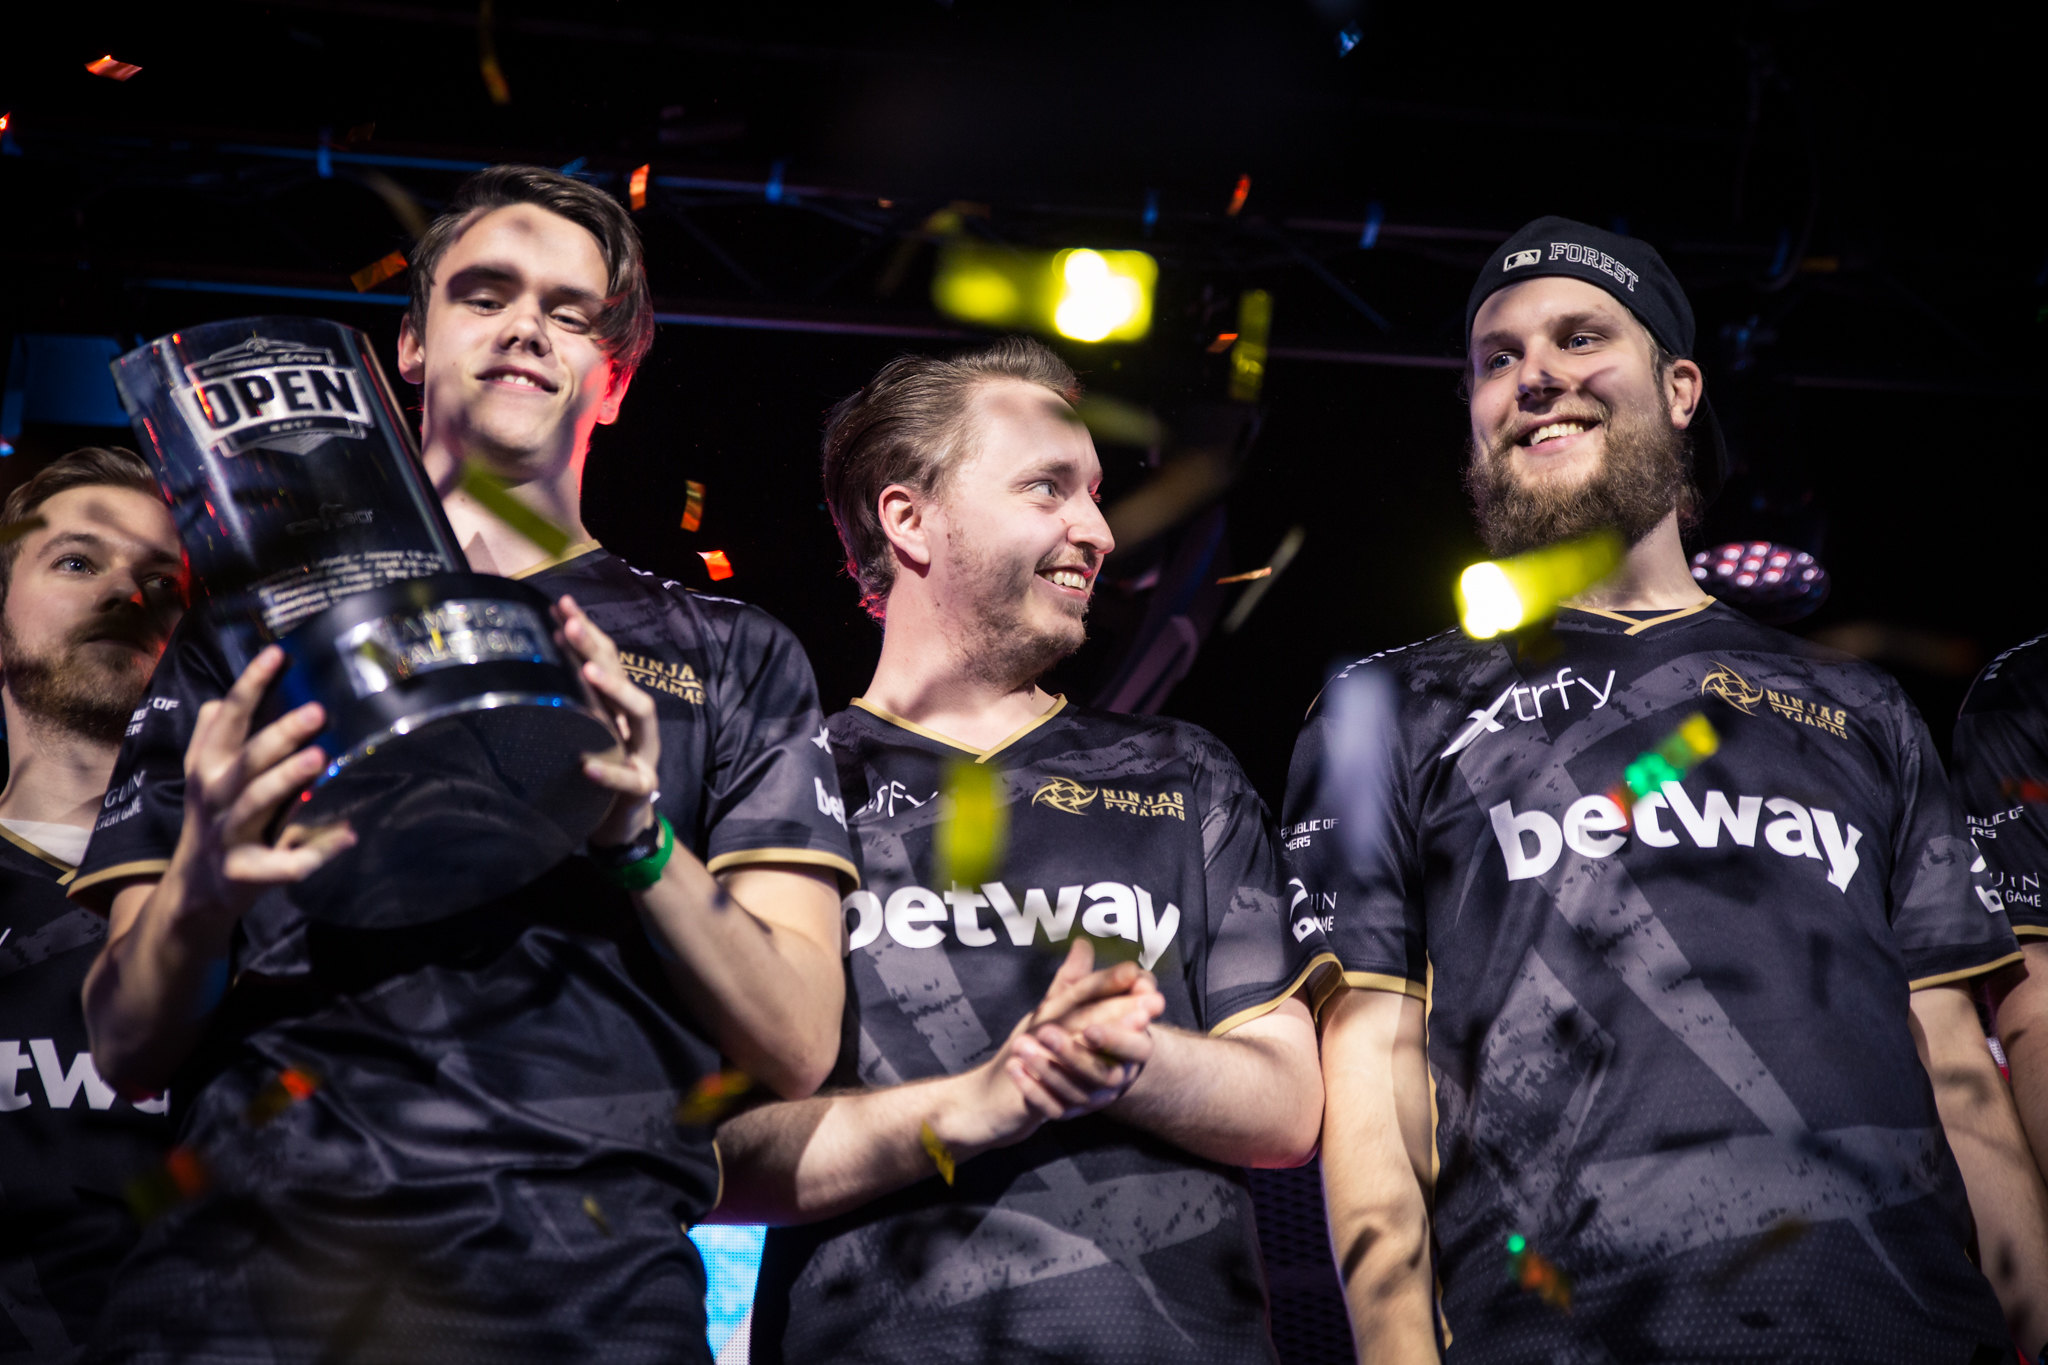 f0rest and GeT_RiGhT playing for NiP at Dreamhack Open